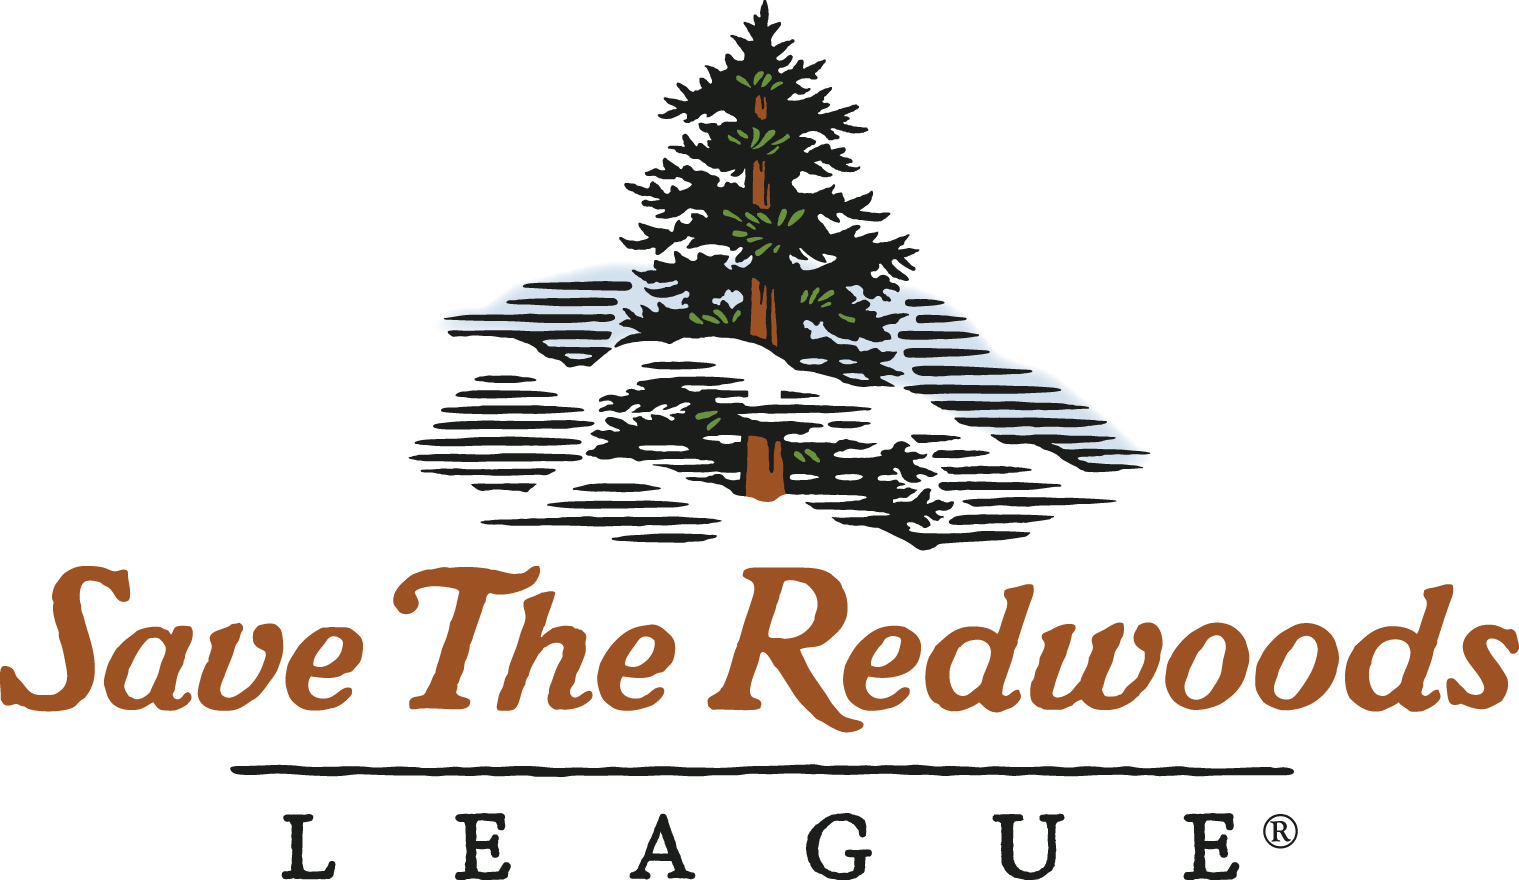 save-the-redwoods-league-logo.jpg